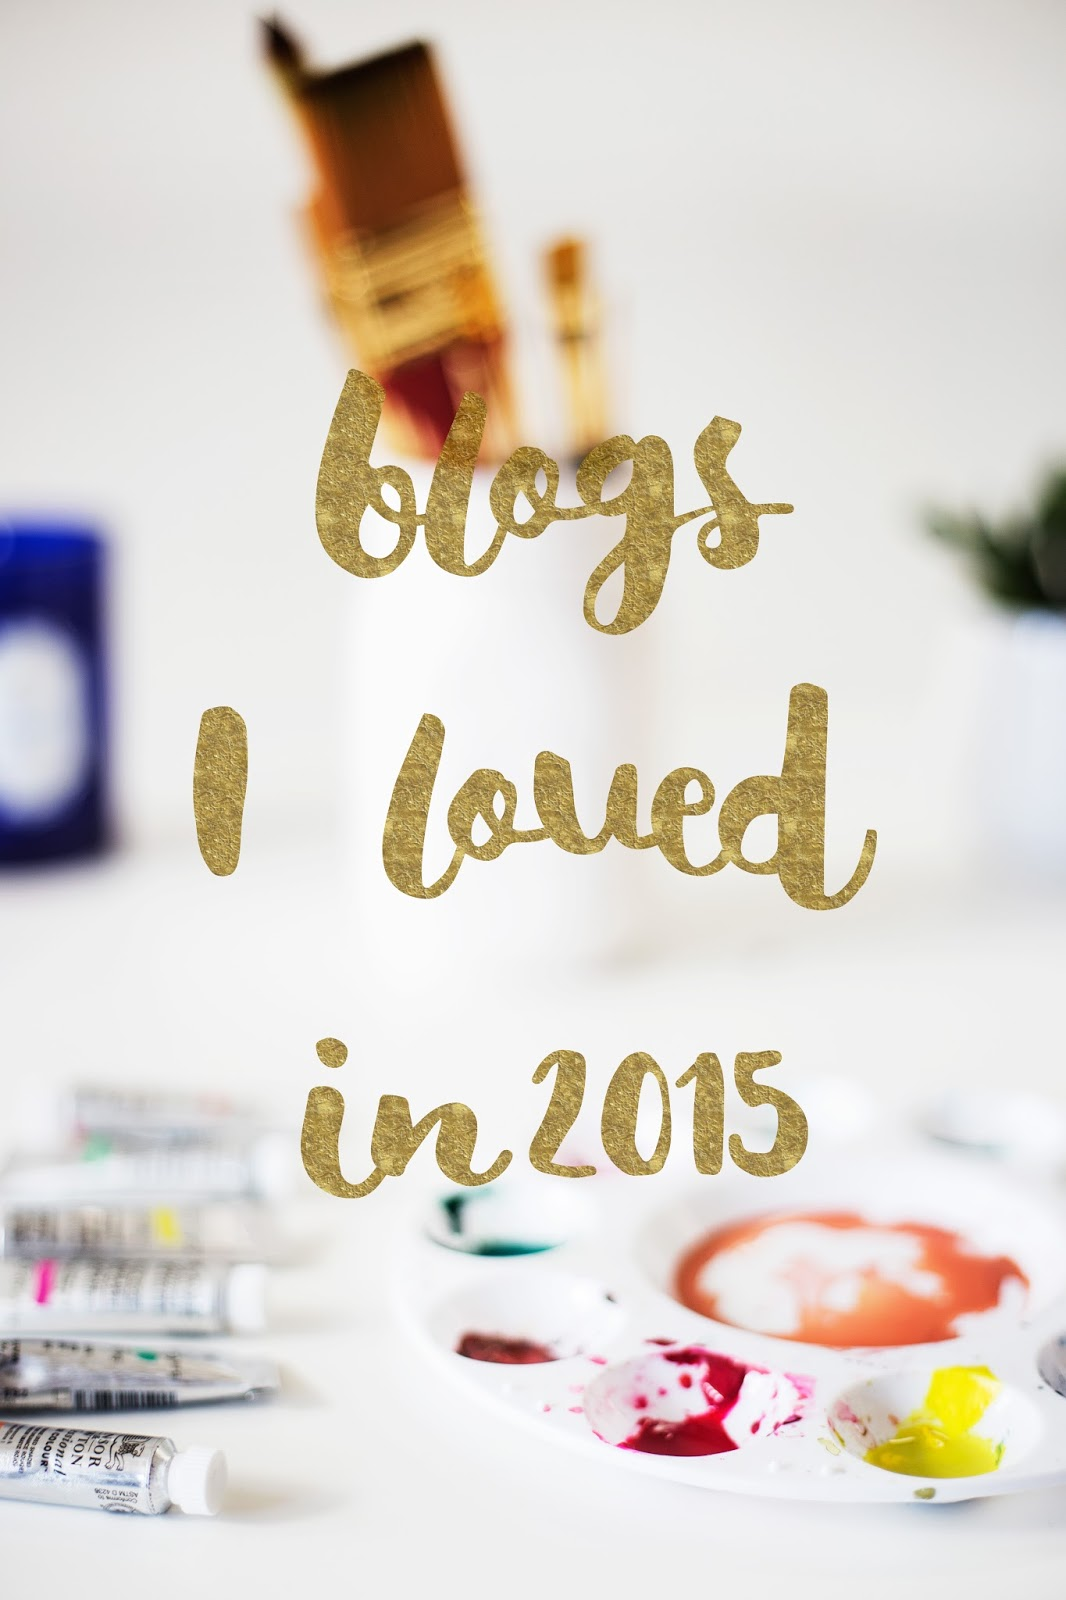 Top blogs of 2015